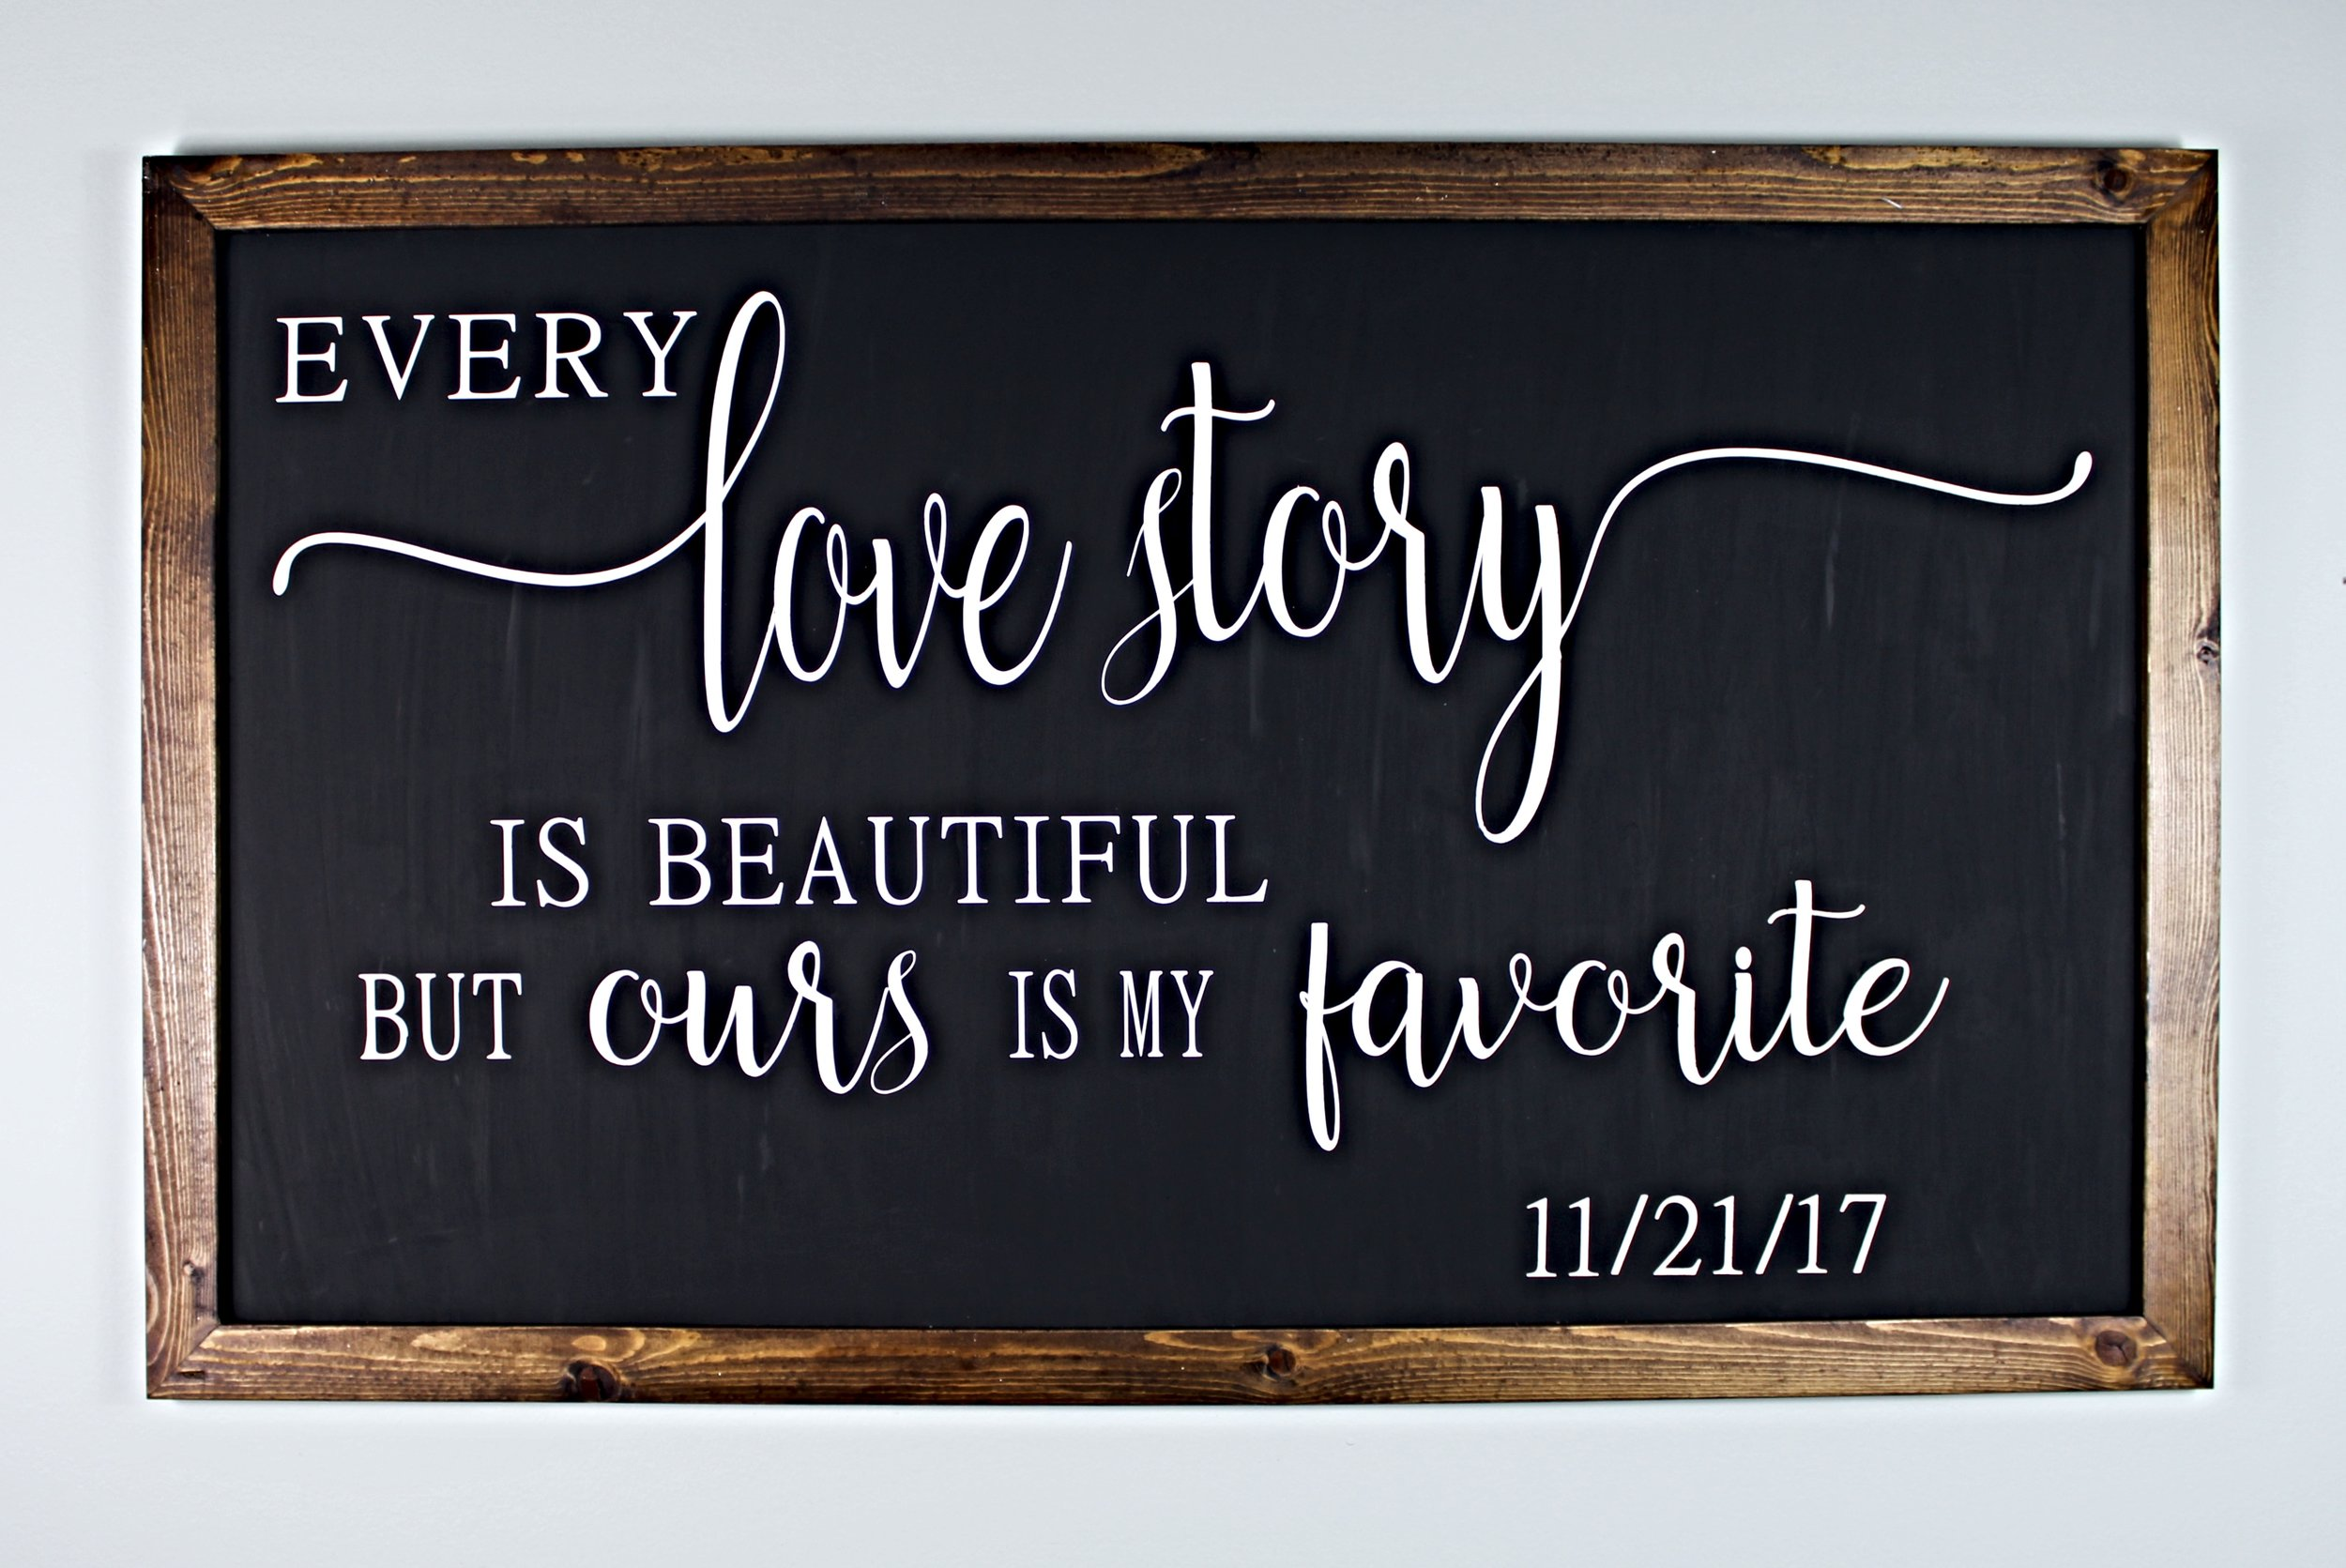 We bring our customer's visions to life! Just like this custom sign! Or select from one of our many beautiful creations…